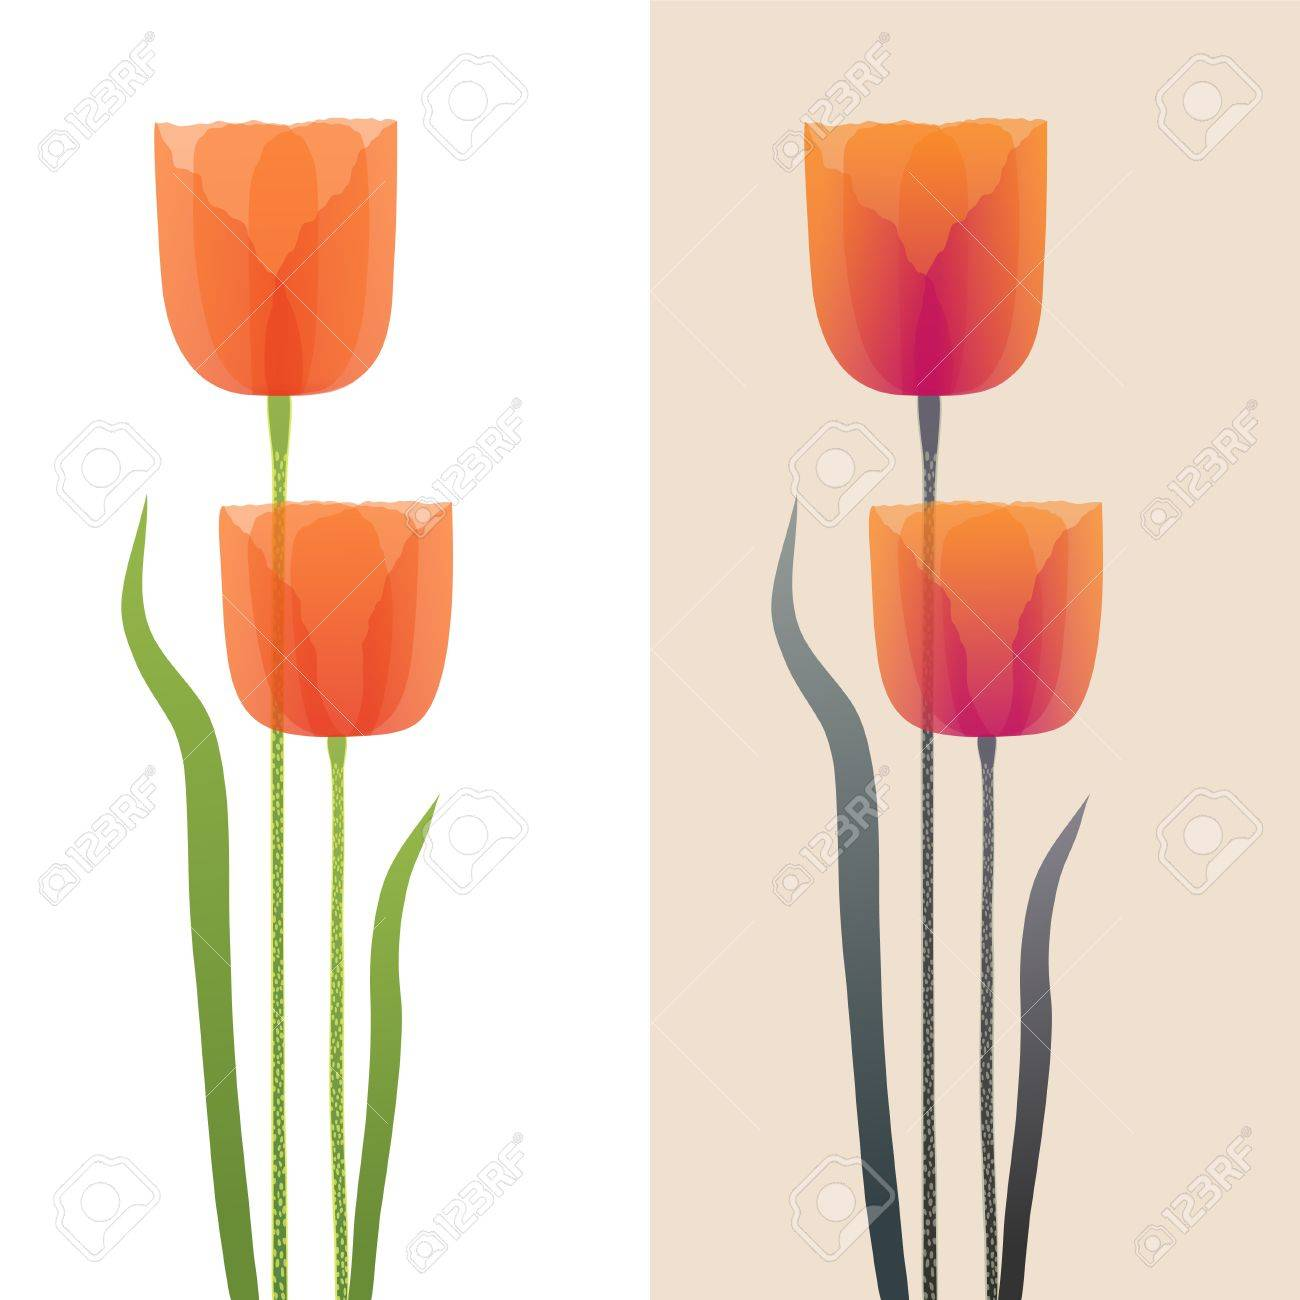 Decorative poppies in two color variations Stock Vector - 15101106